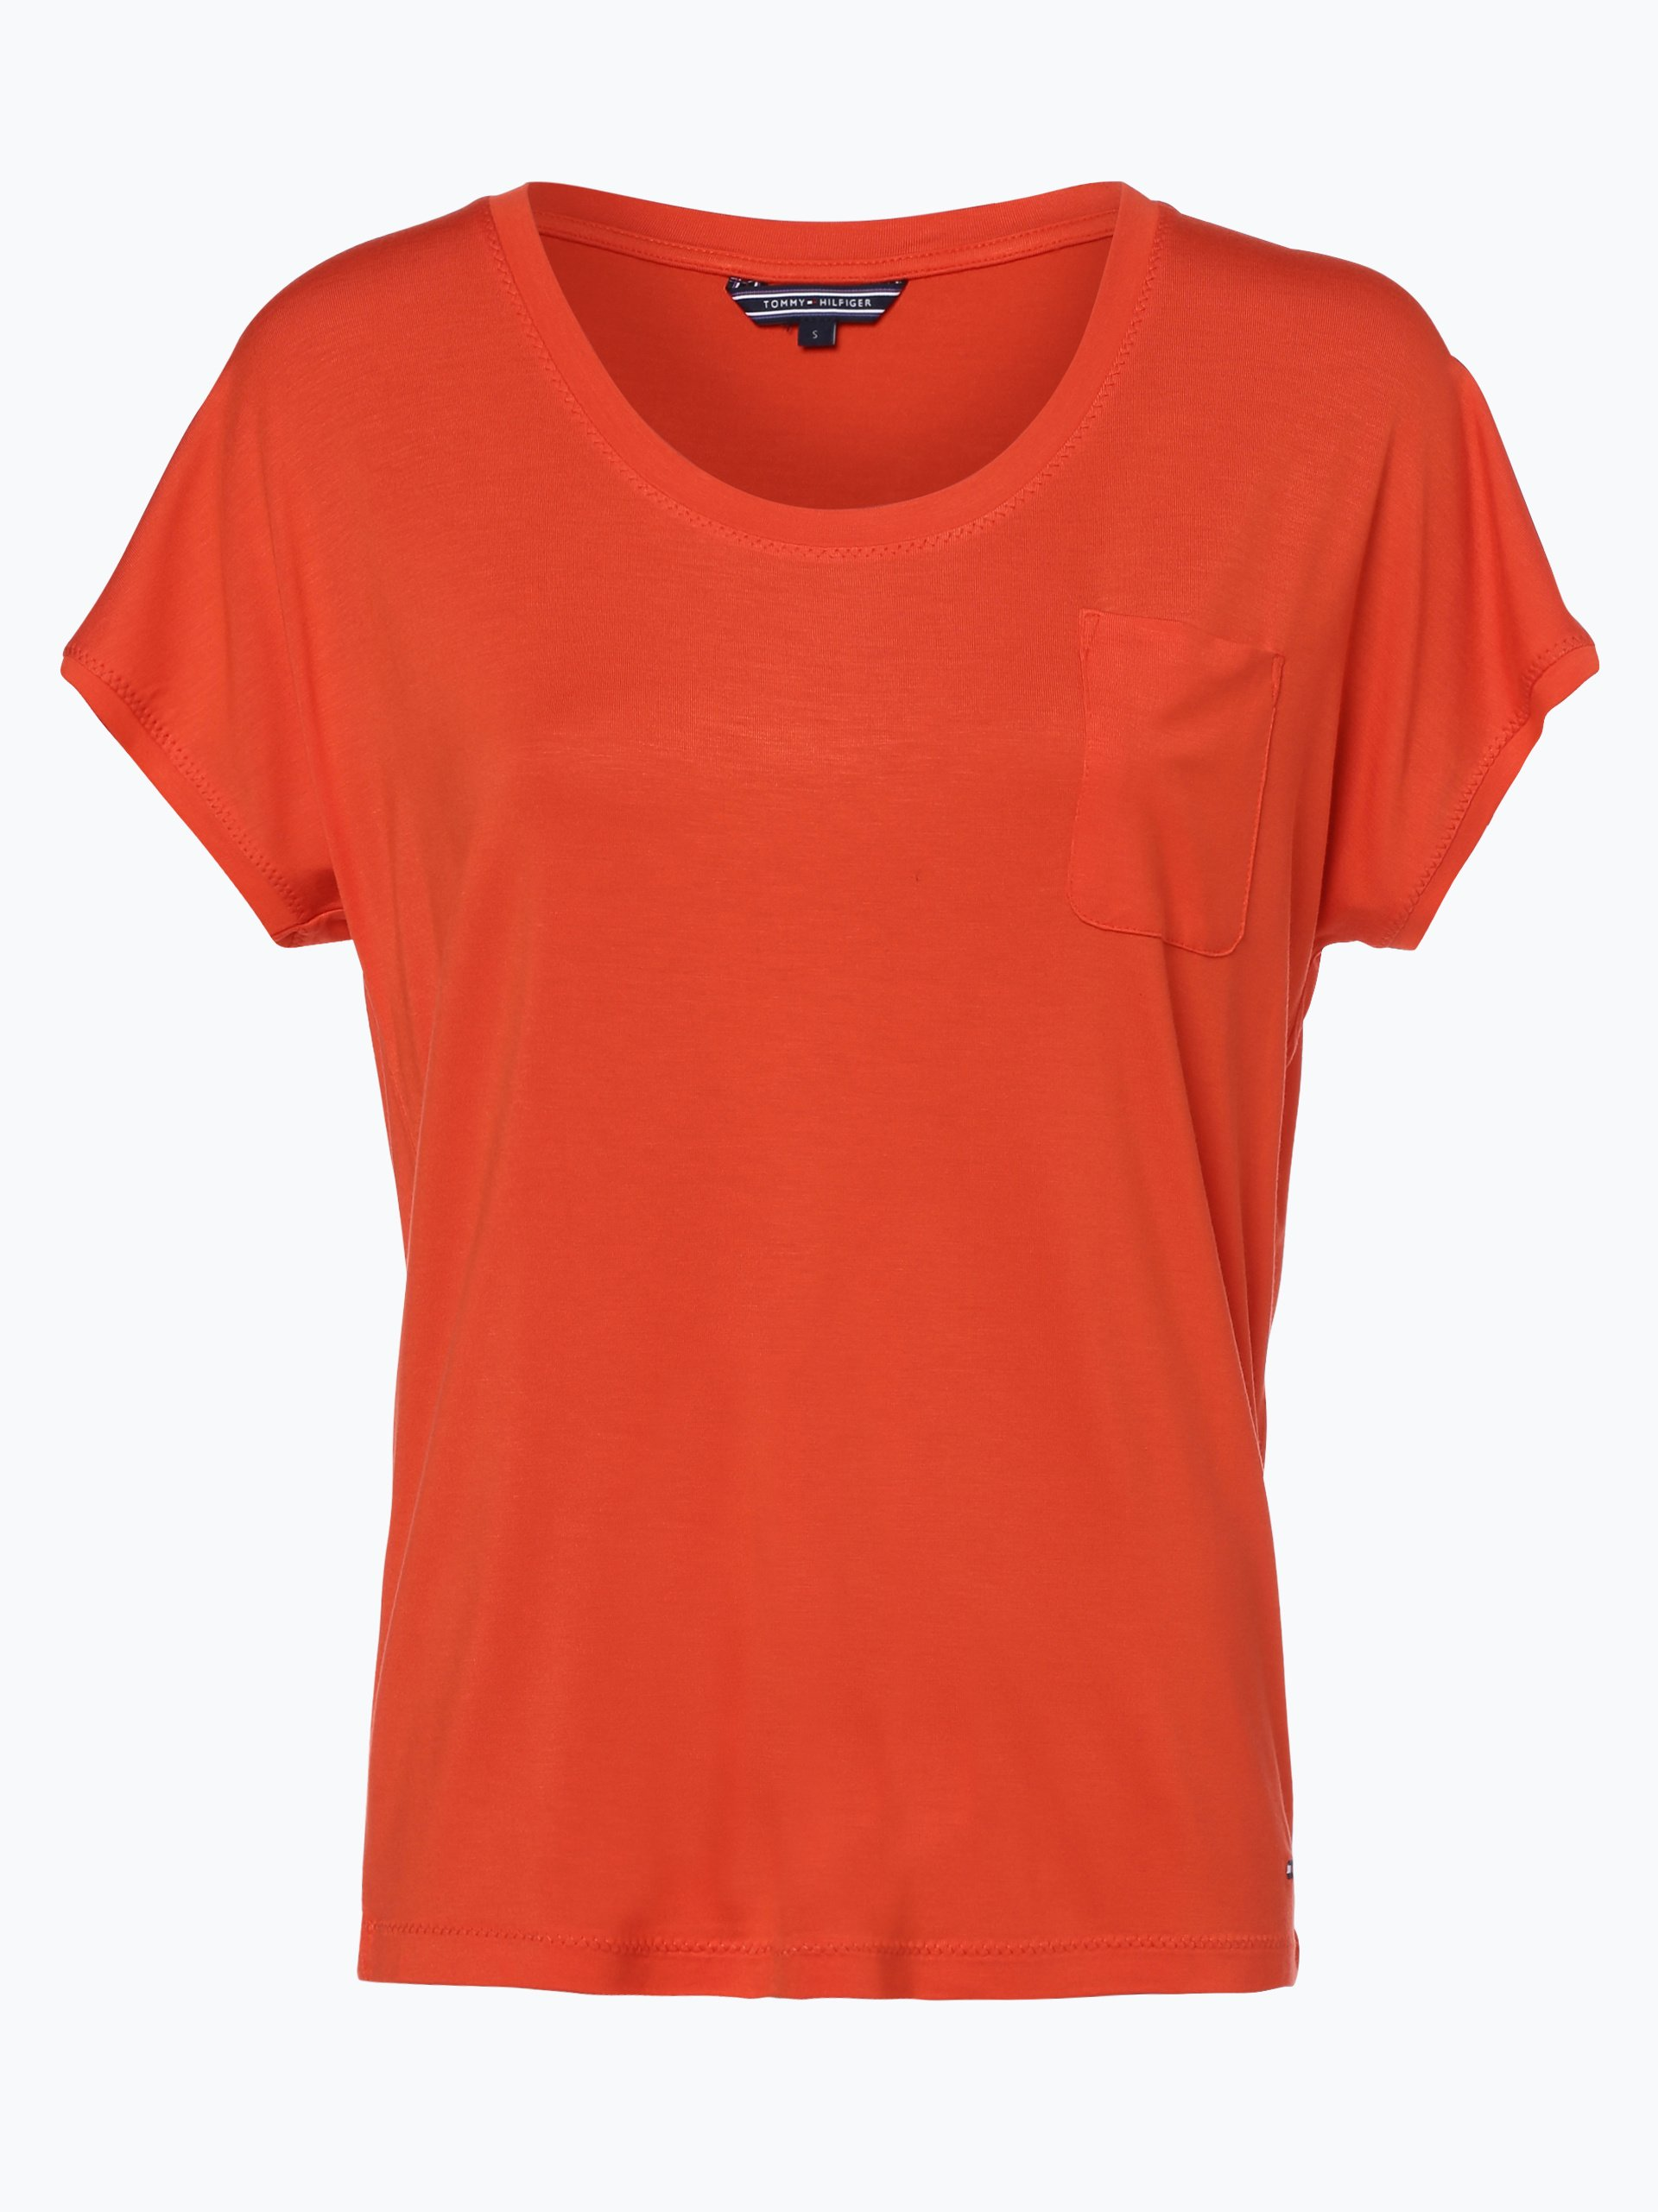 tommy hilfiger damen t shirt draser orange uni online. Black Bedroom Furniture Sets. Home Design Ideas